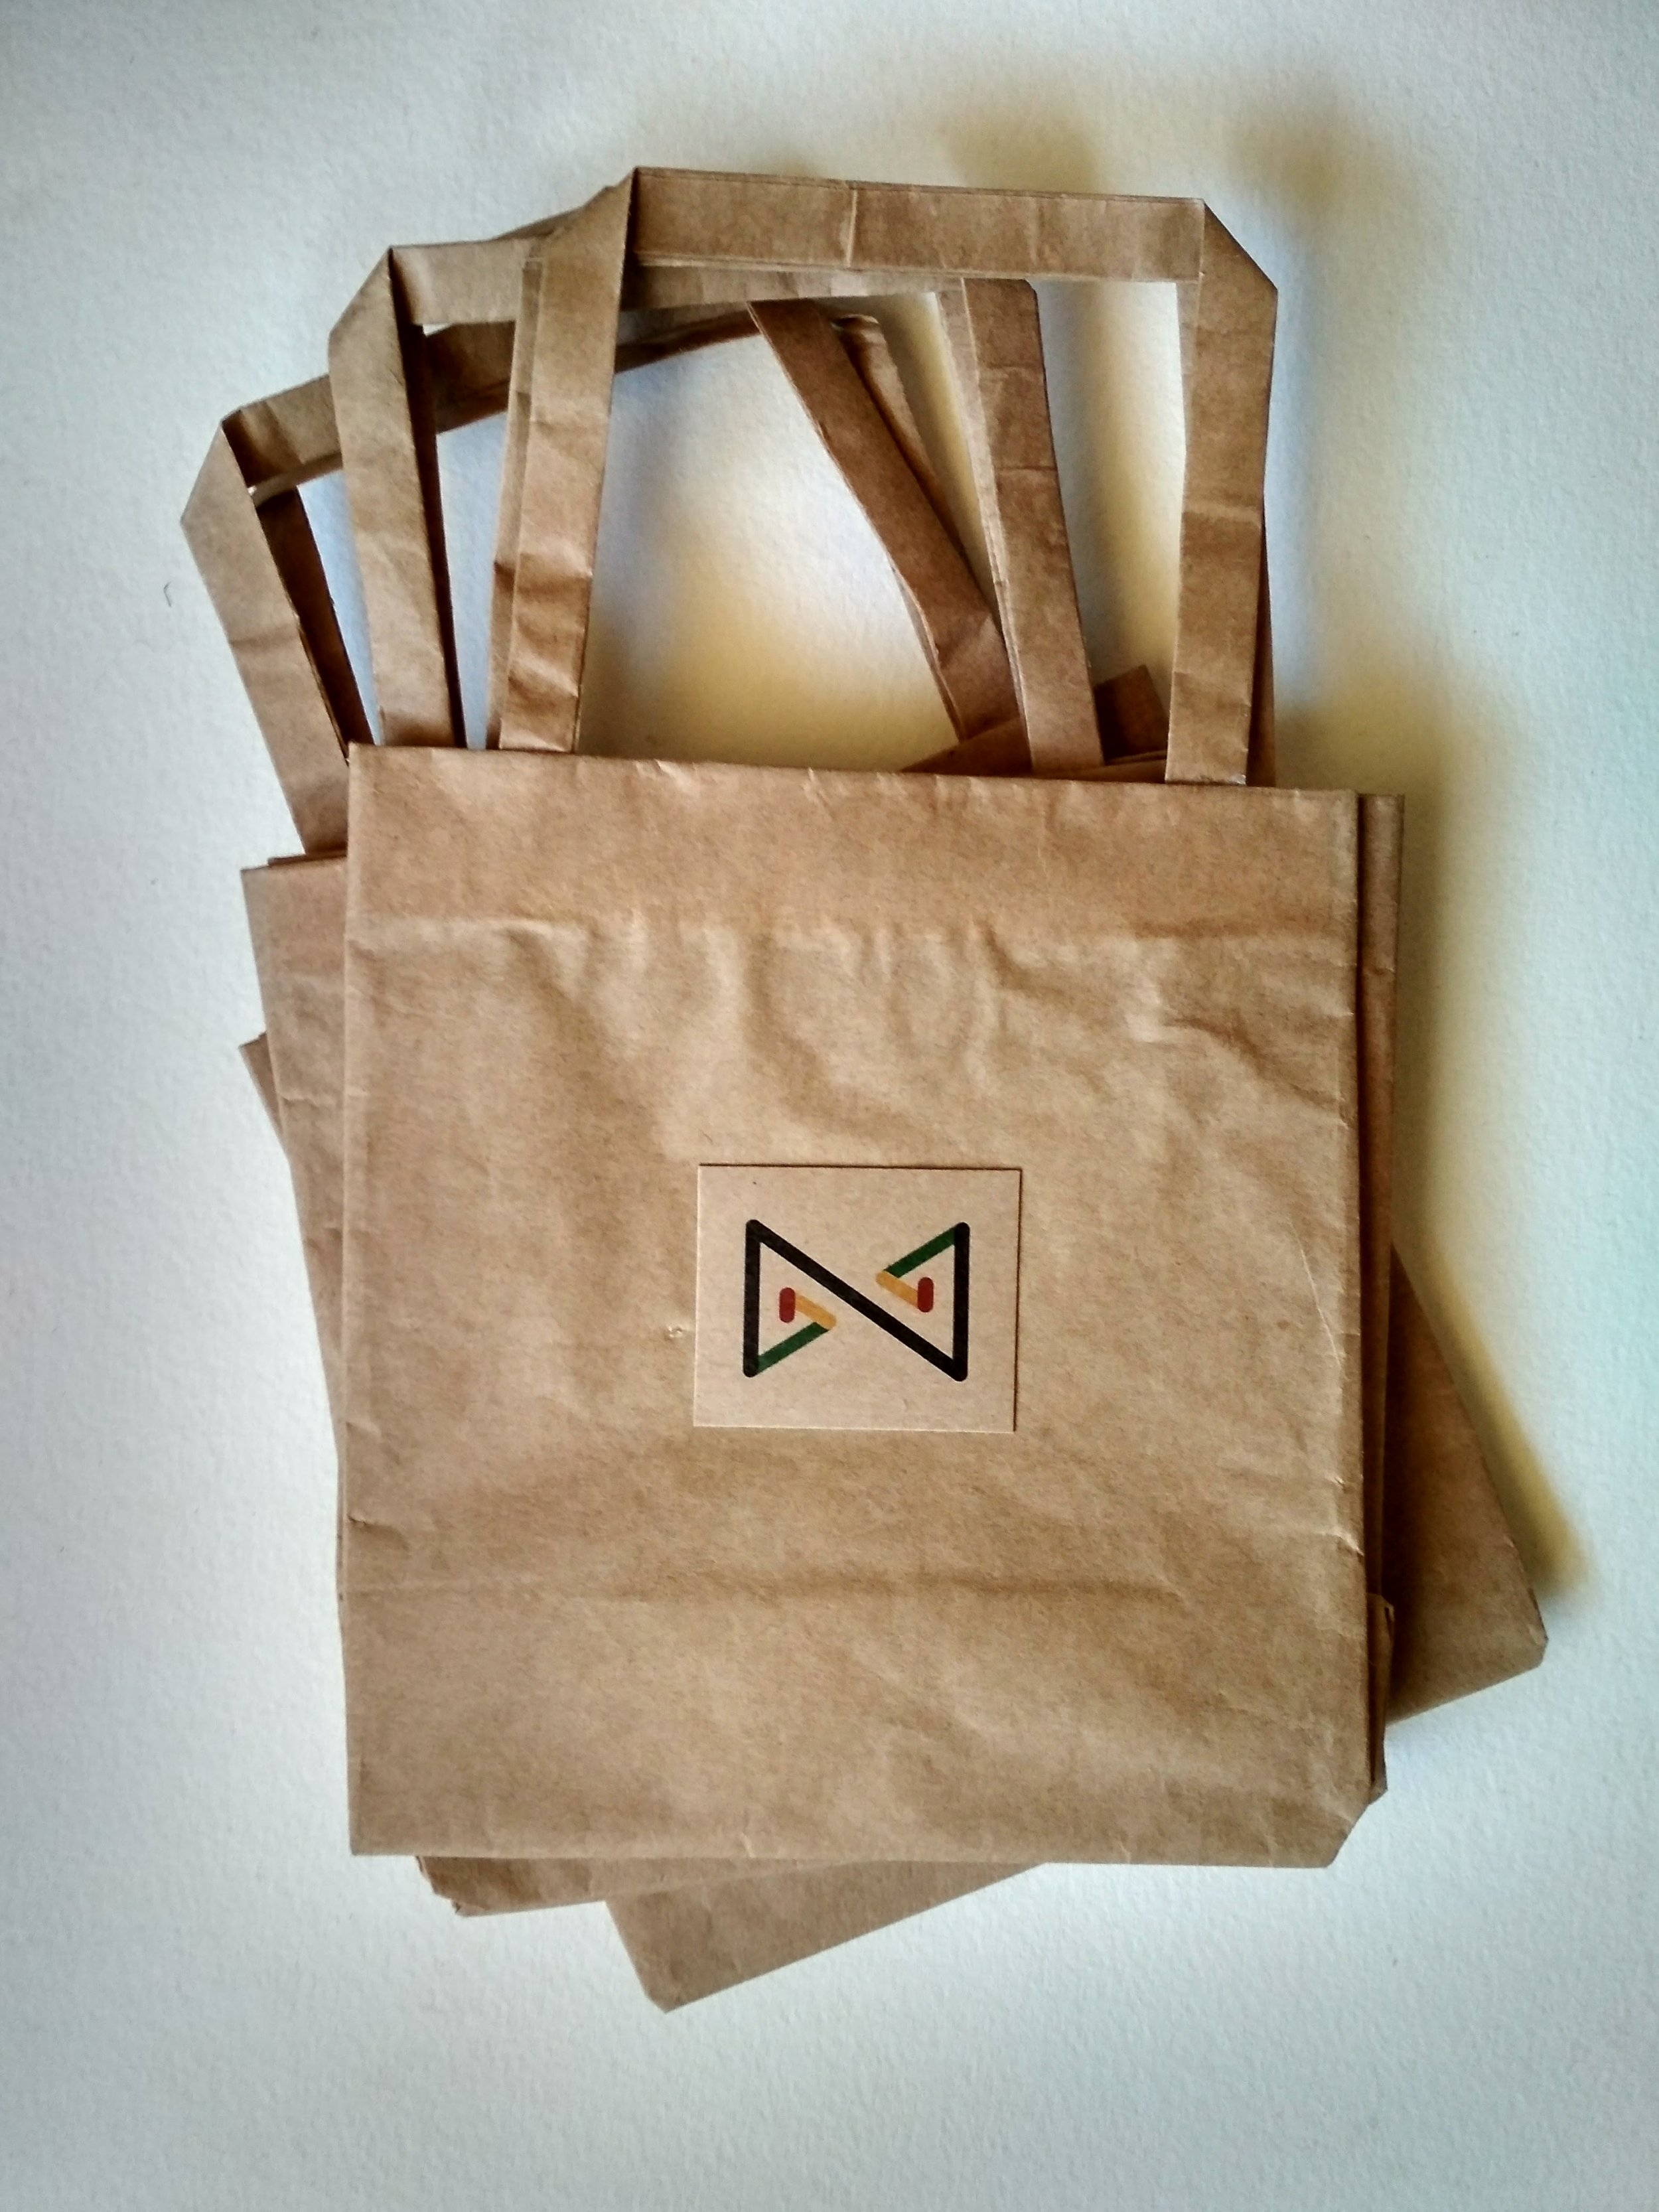 Prototype paper bags from NZEVE for our Zimbowties